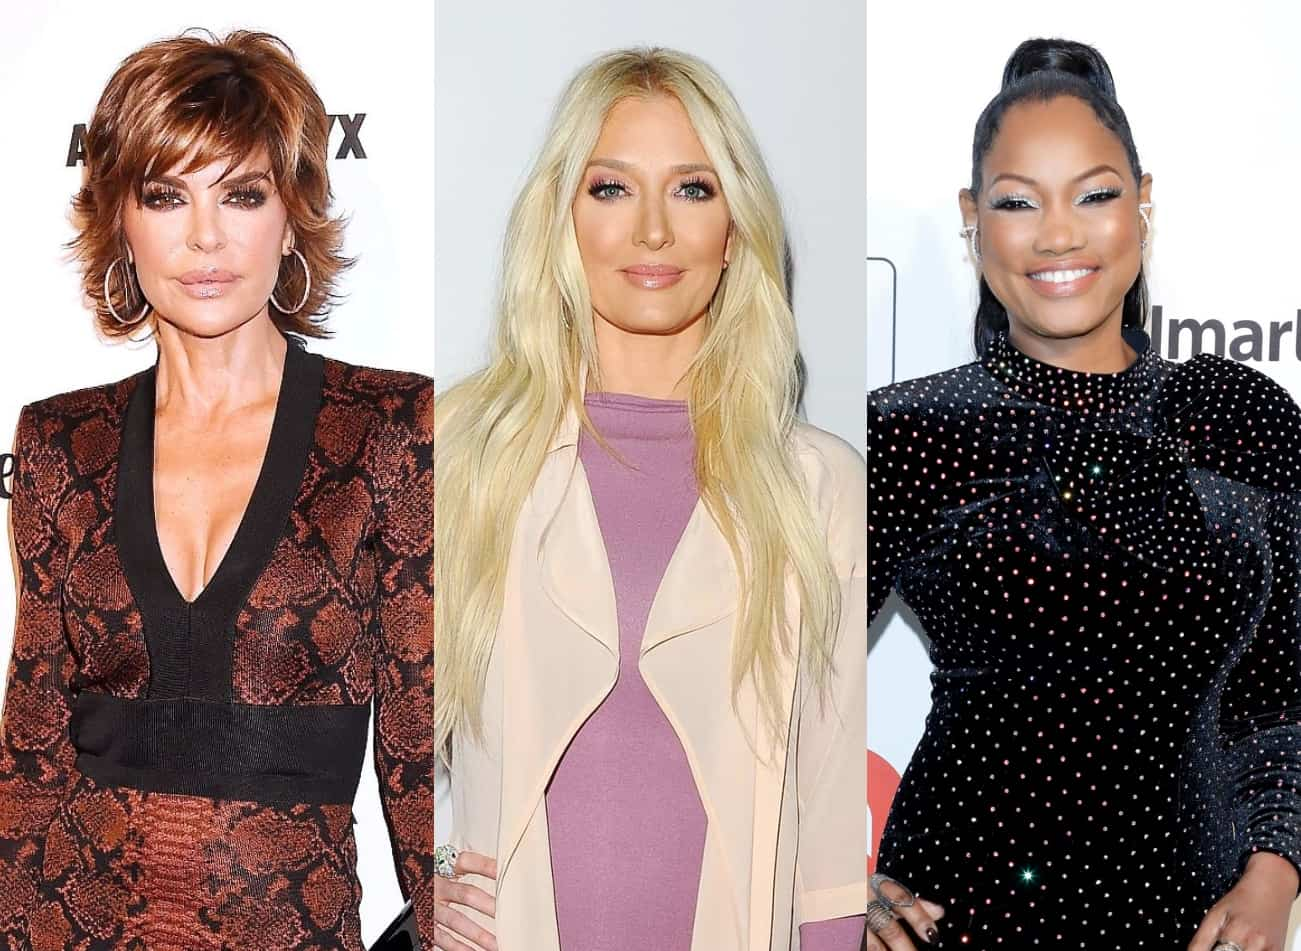 """Lisa Rinna Reveals Erika Jayne Had Screaming Match With Producer Over Garcelle Drama on RHOBH as Erika Reportedly Feels Bravo """"Pulled a Fast One"""" On Her"""